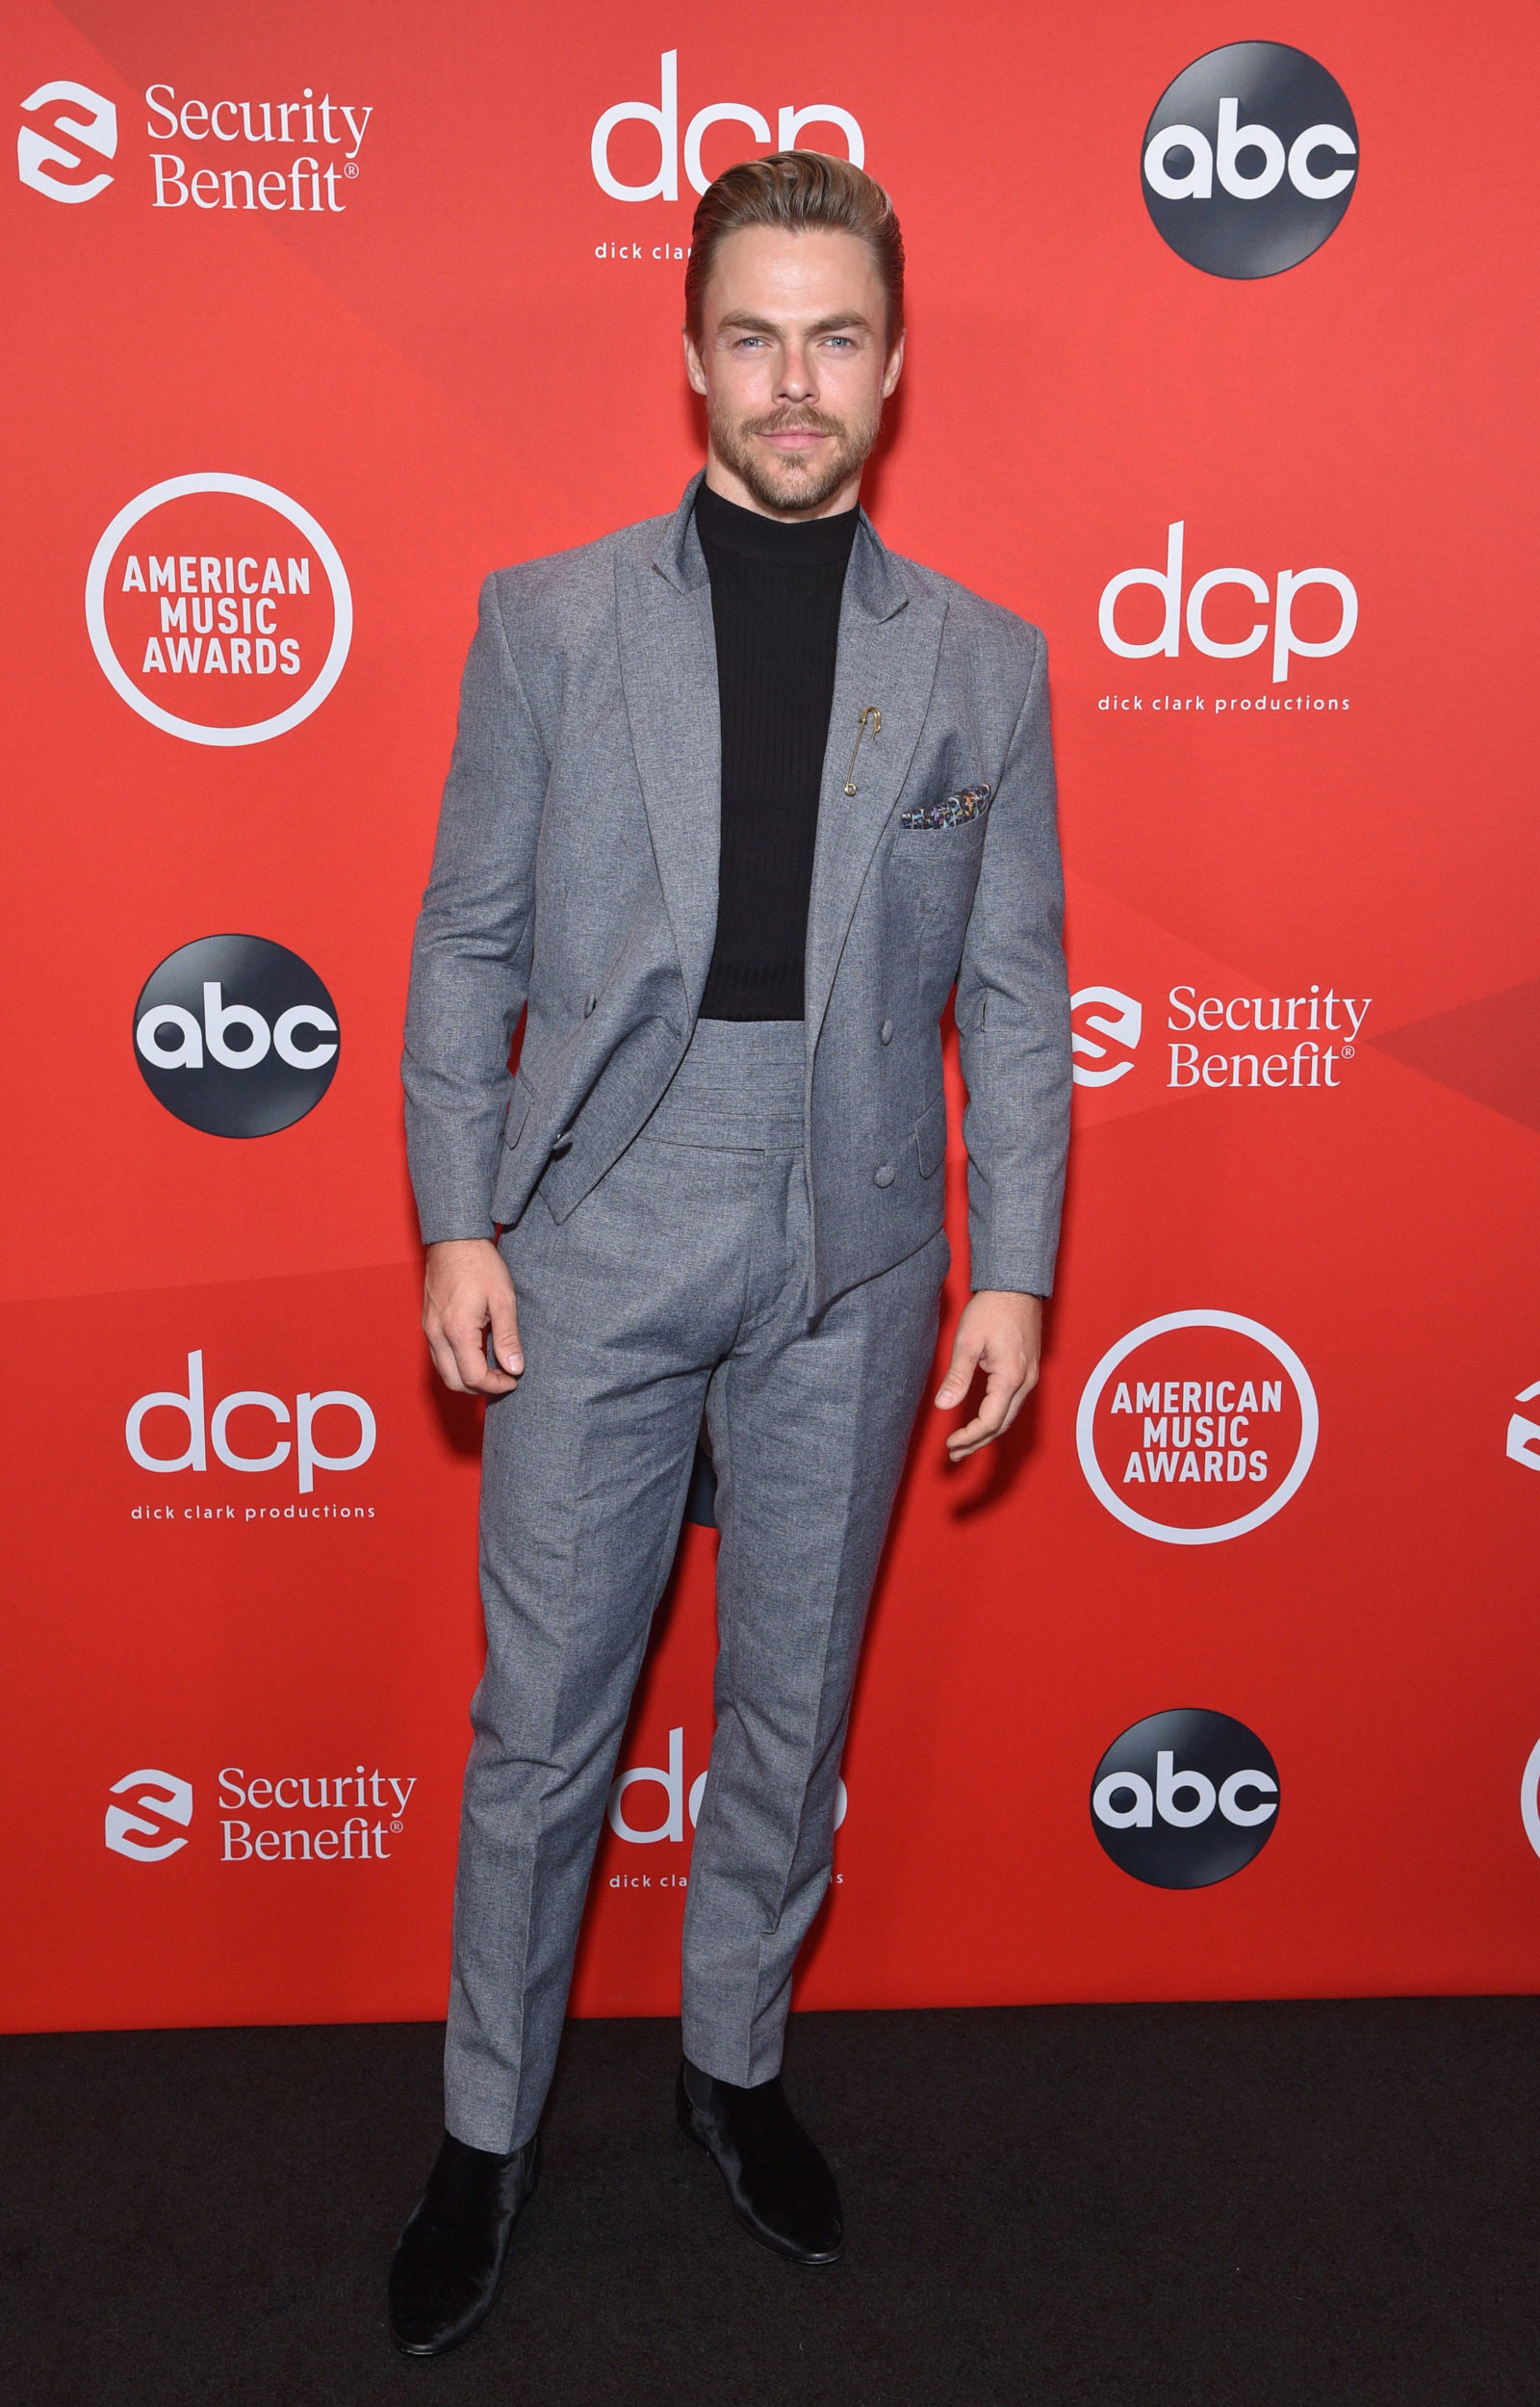 derek-hough-in-grayscale-suit-to-the-2020-american-music-awards